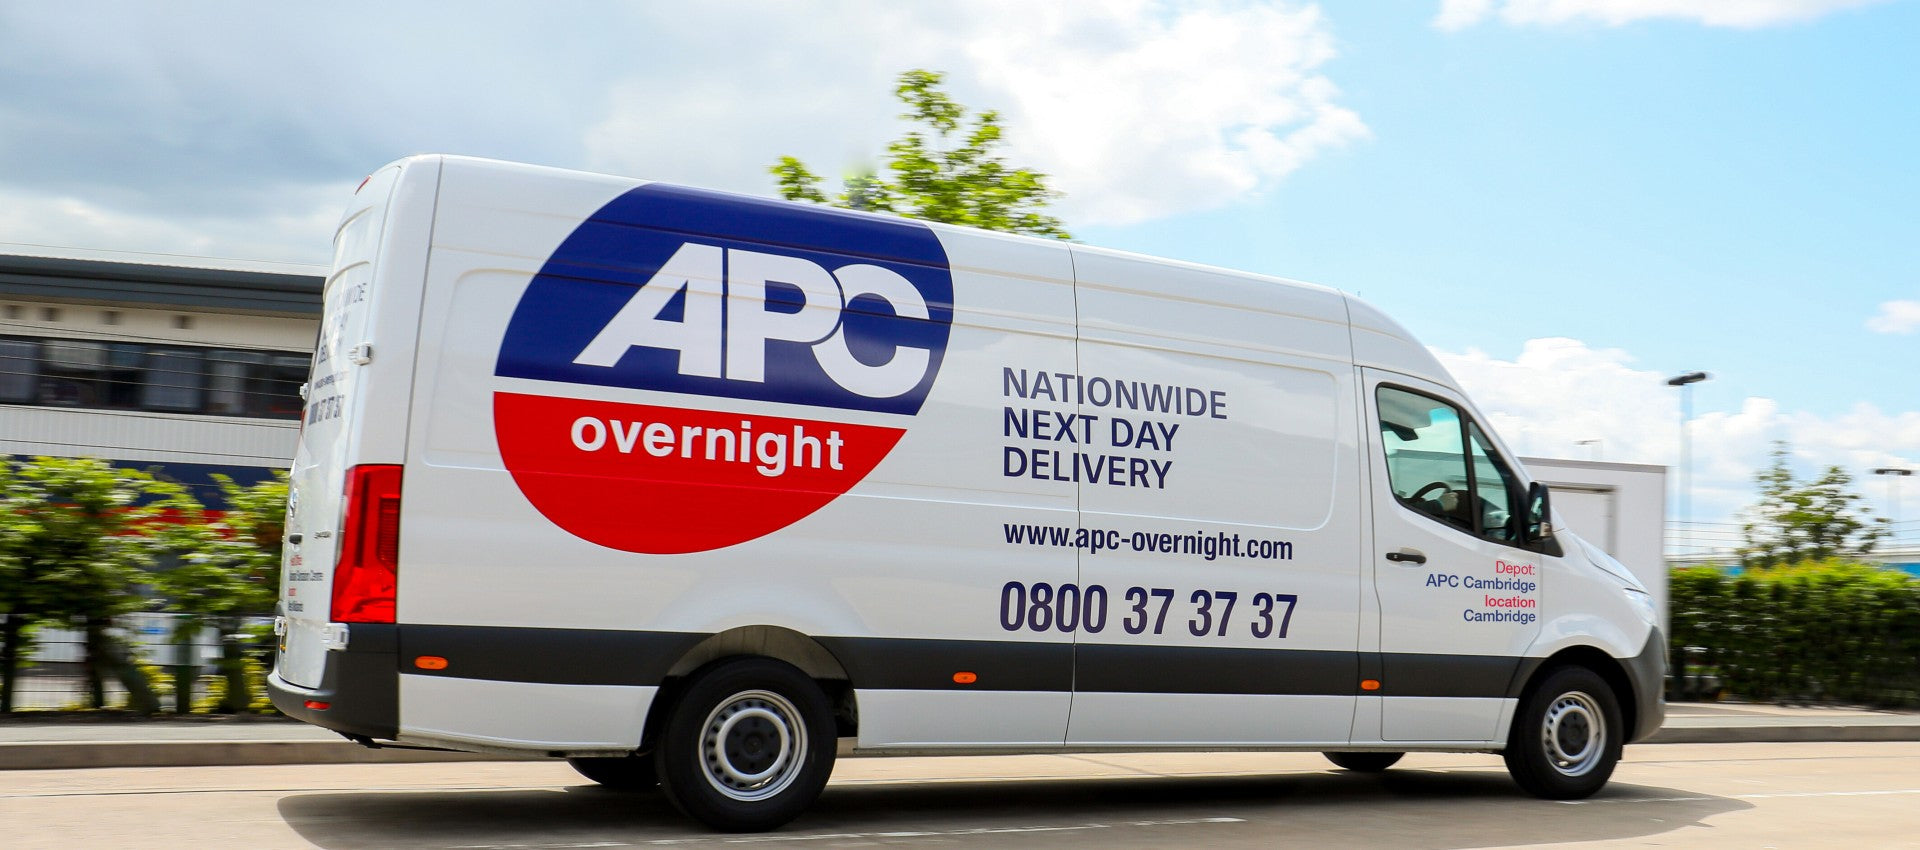 APC Overnight delivery van travelling on the road.